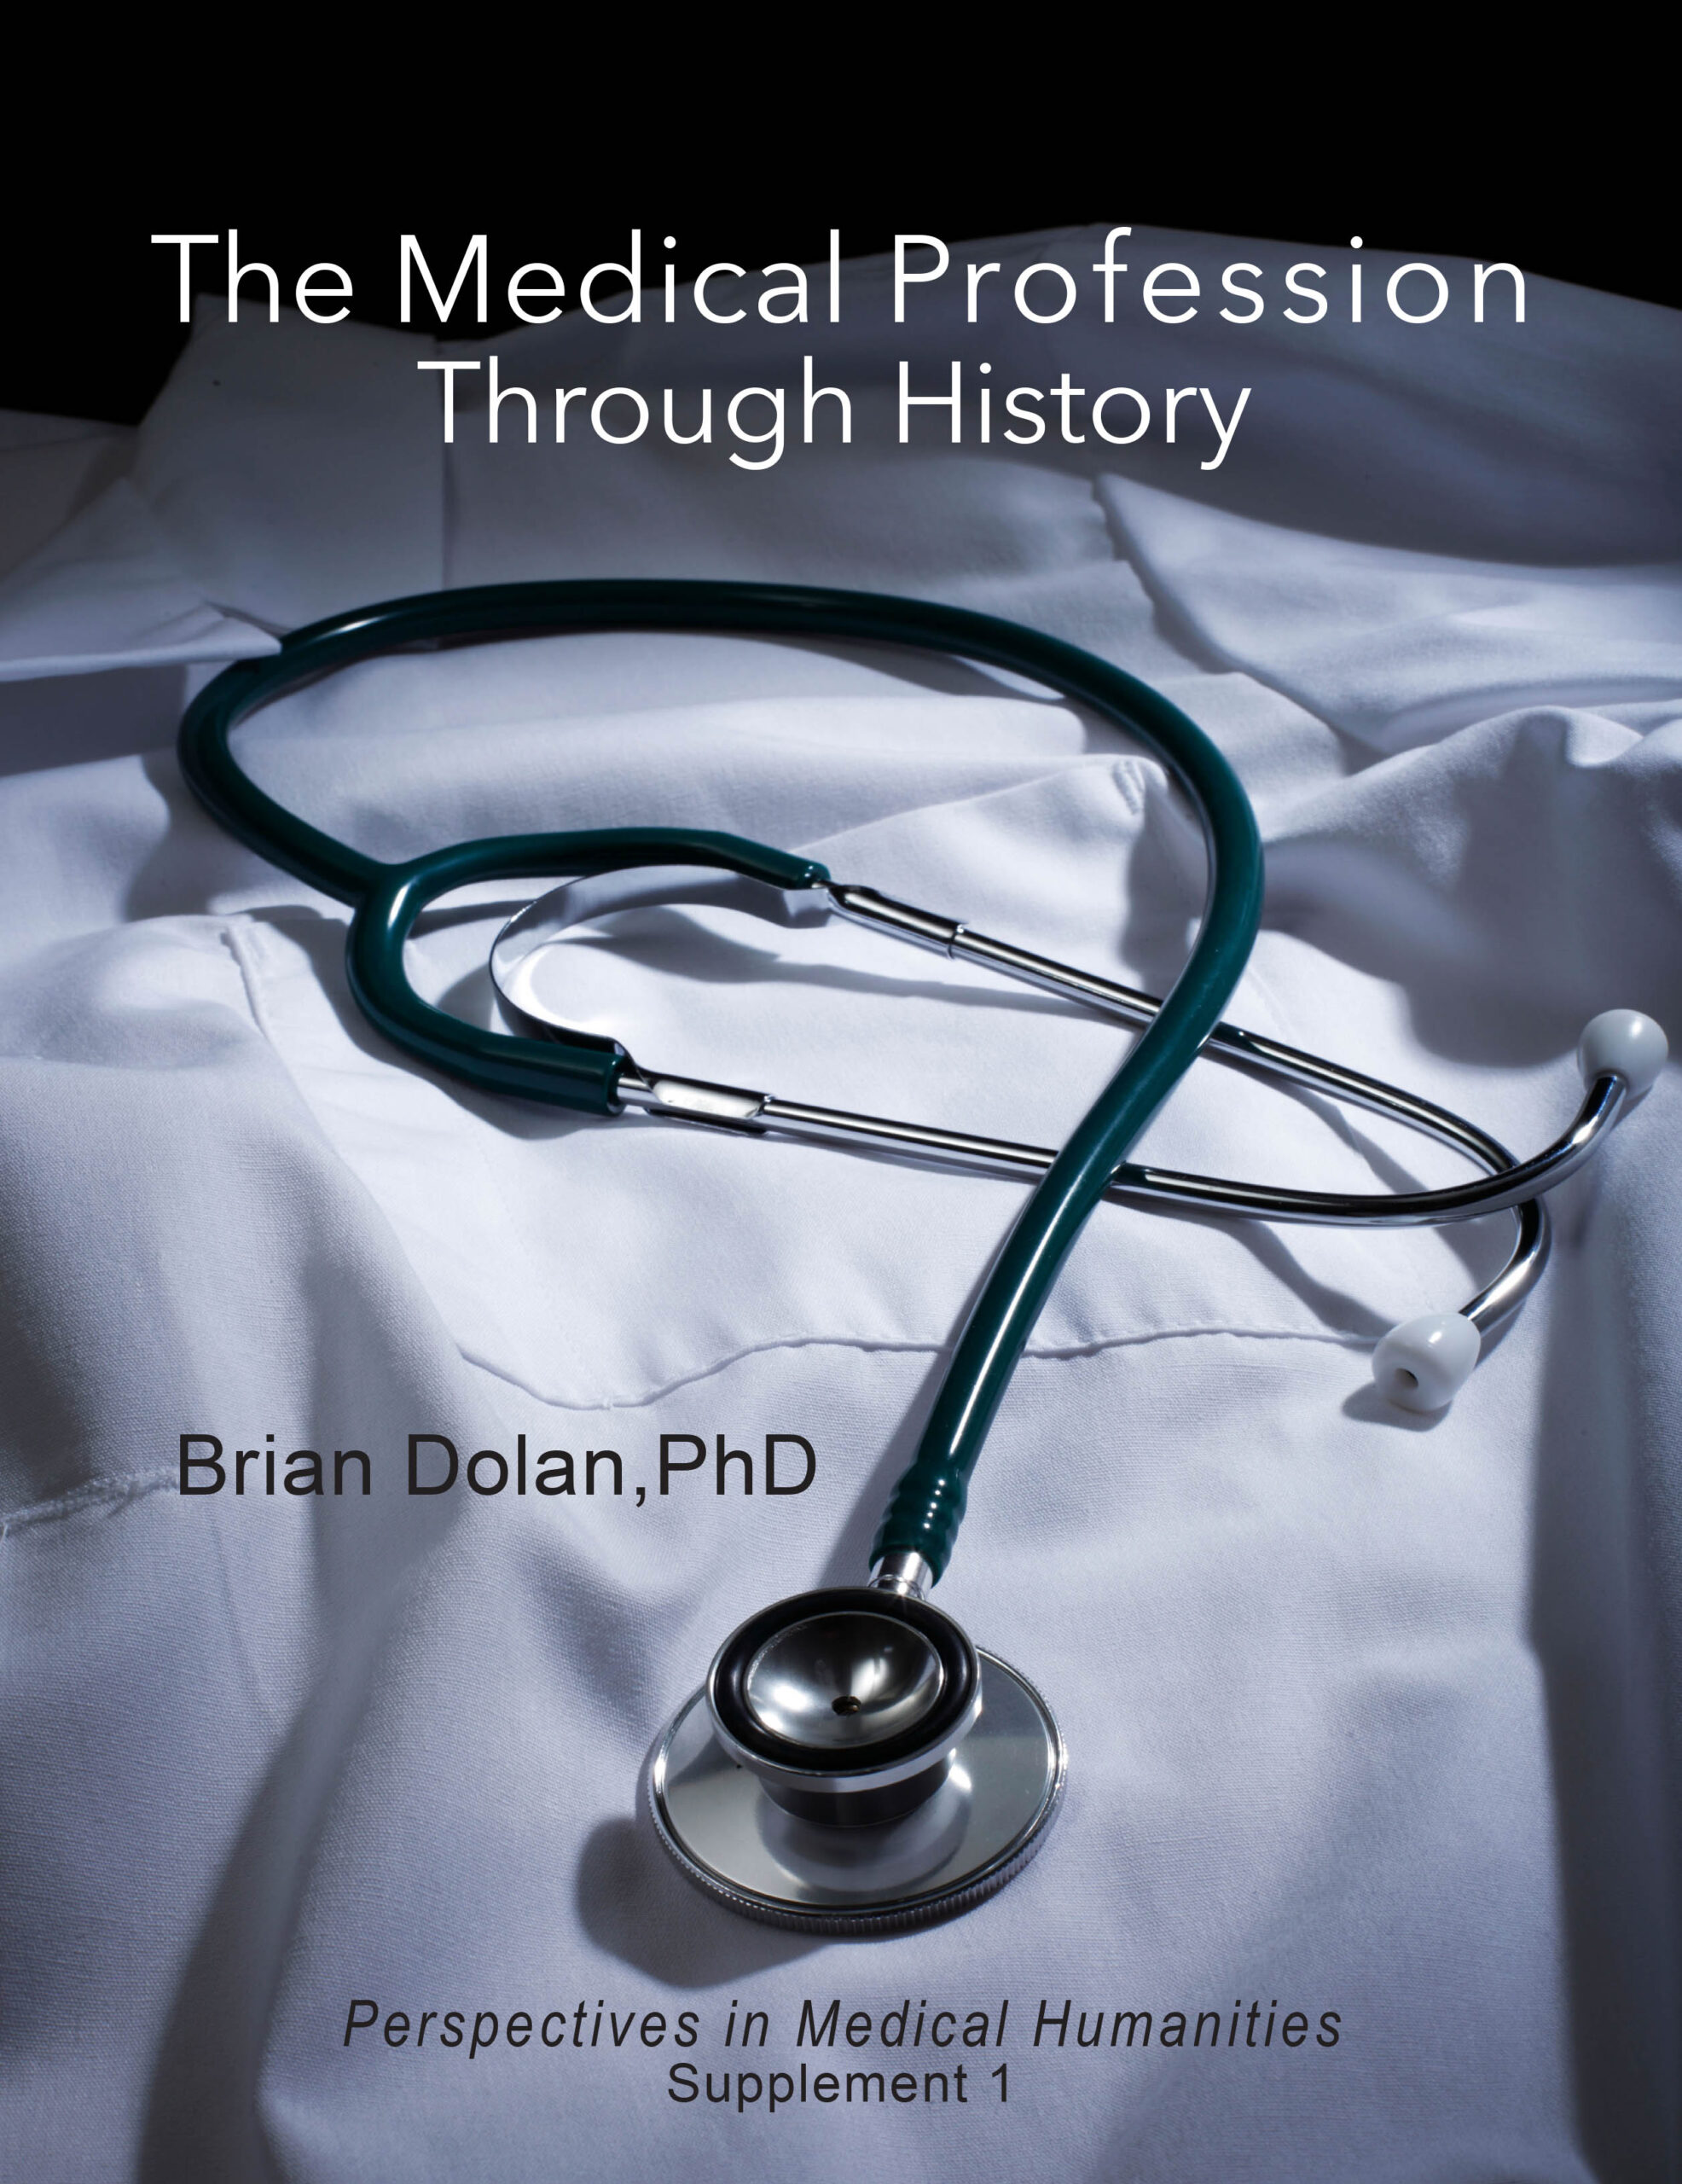 The Medical Profession cover